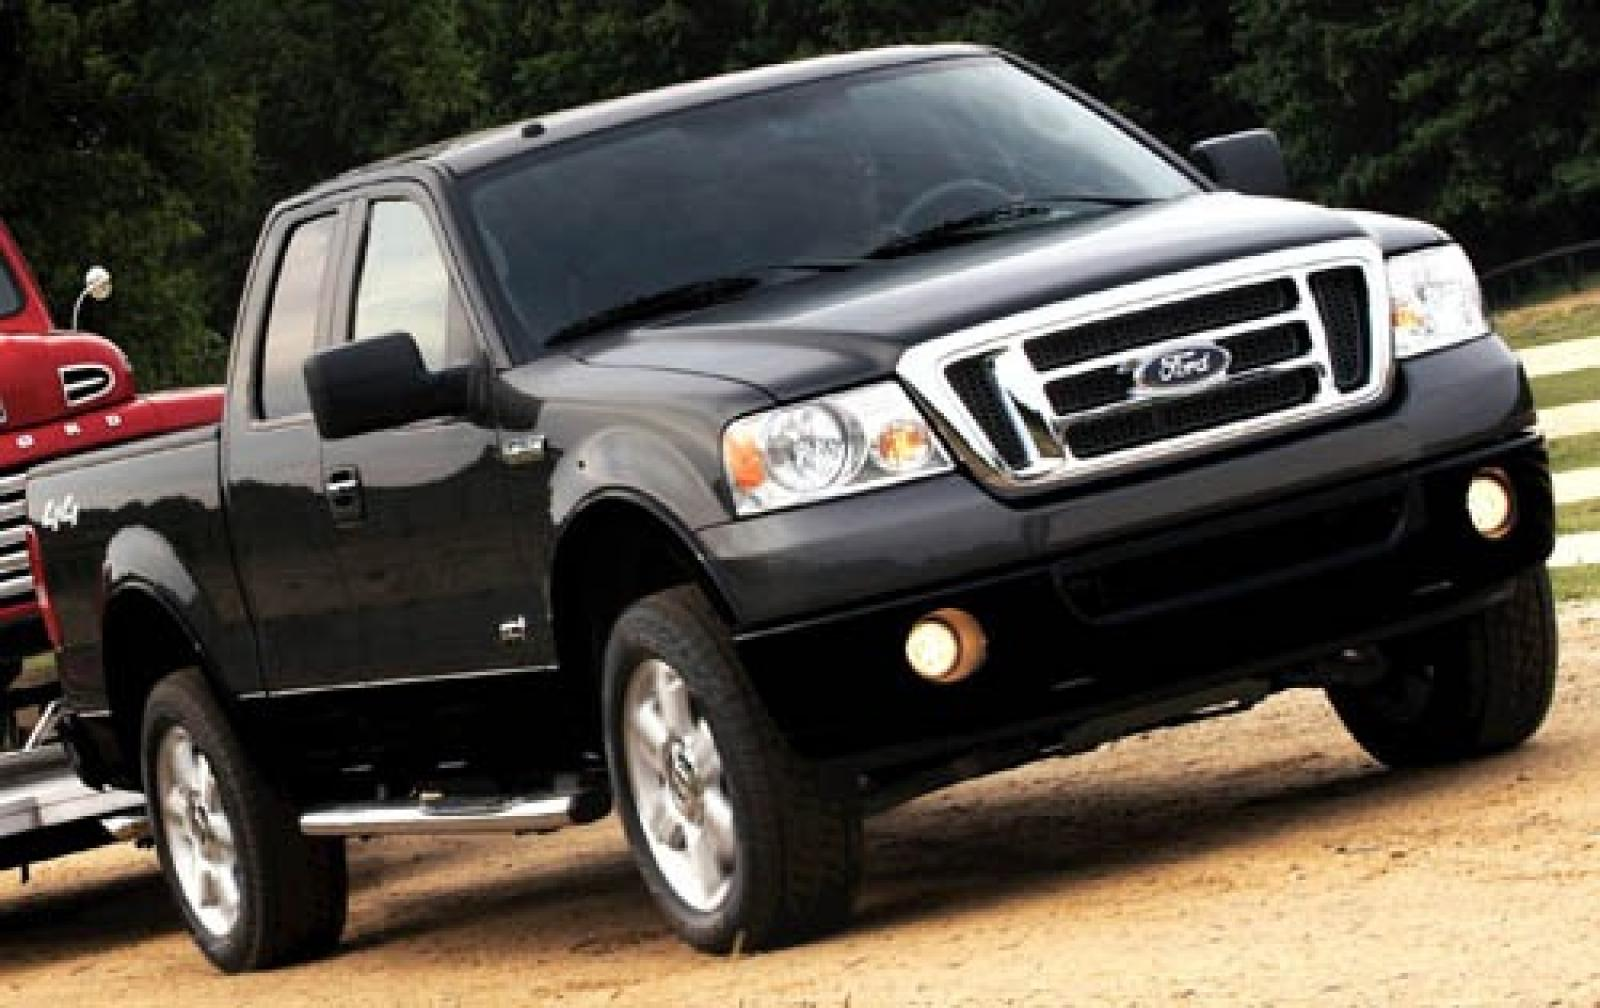 2008 Ford F150 Extended Cab >> 2008 Ford F-150 - Information and photos - ZombieDrive